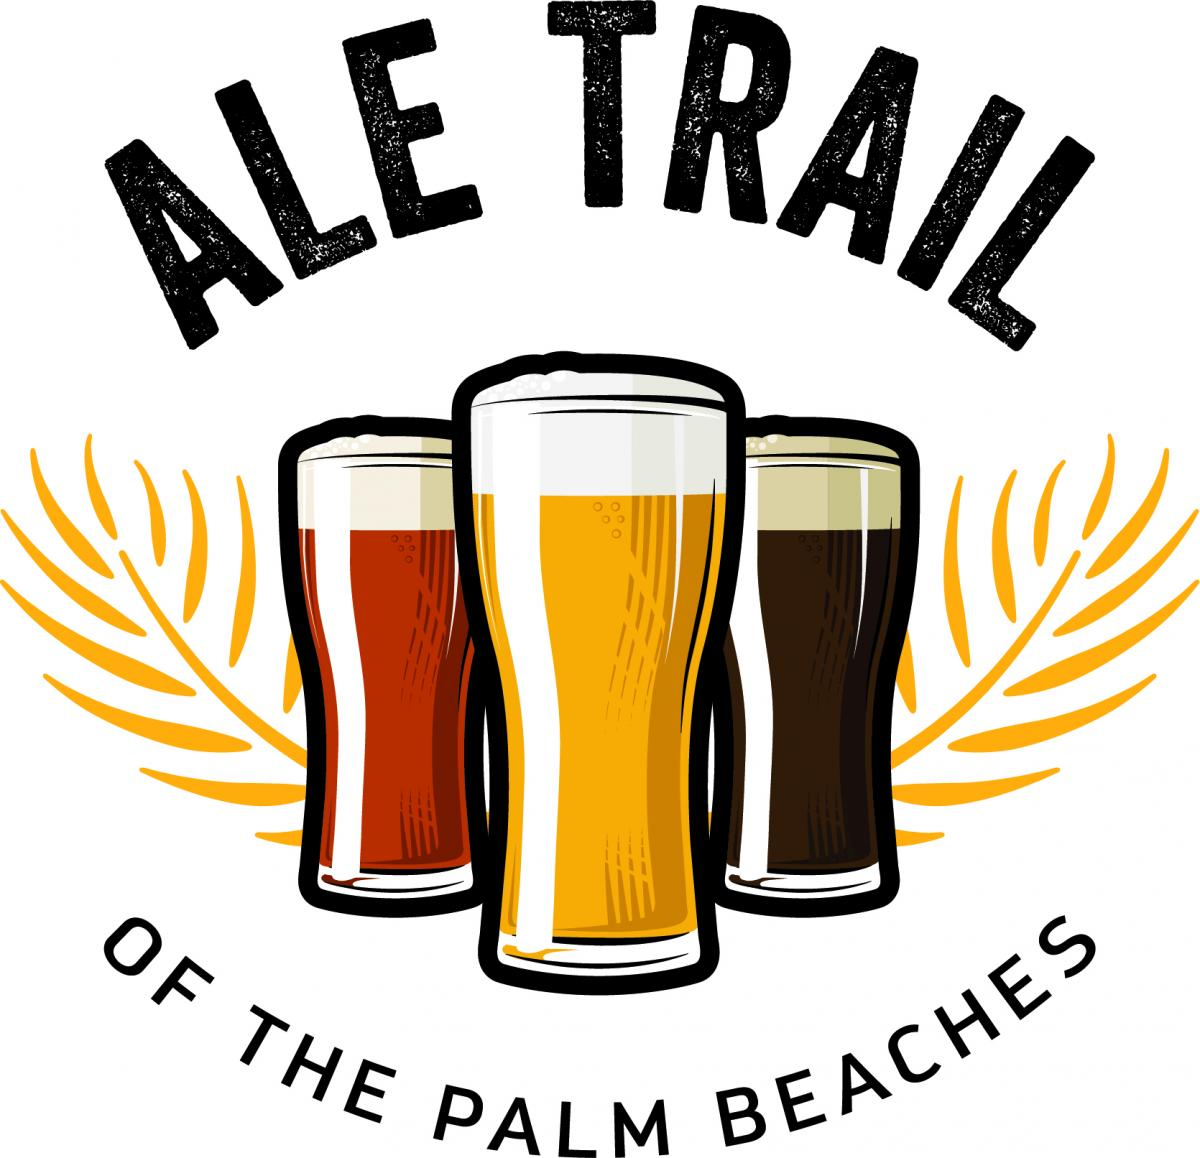 Trilha do Ale do The Palm Beaches logotipo